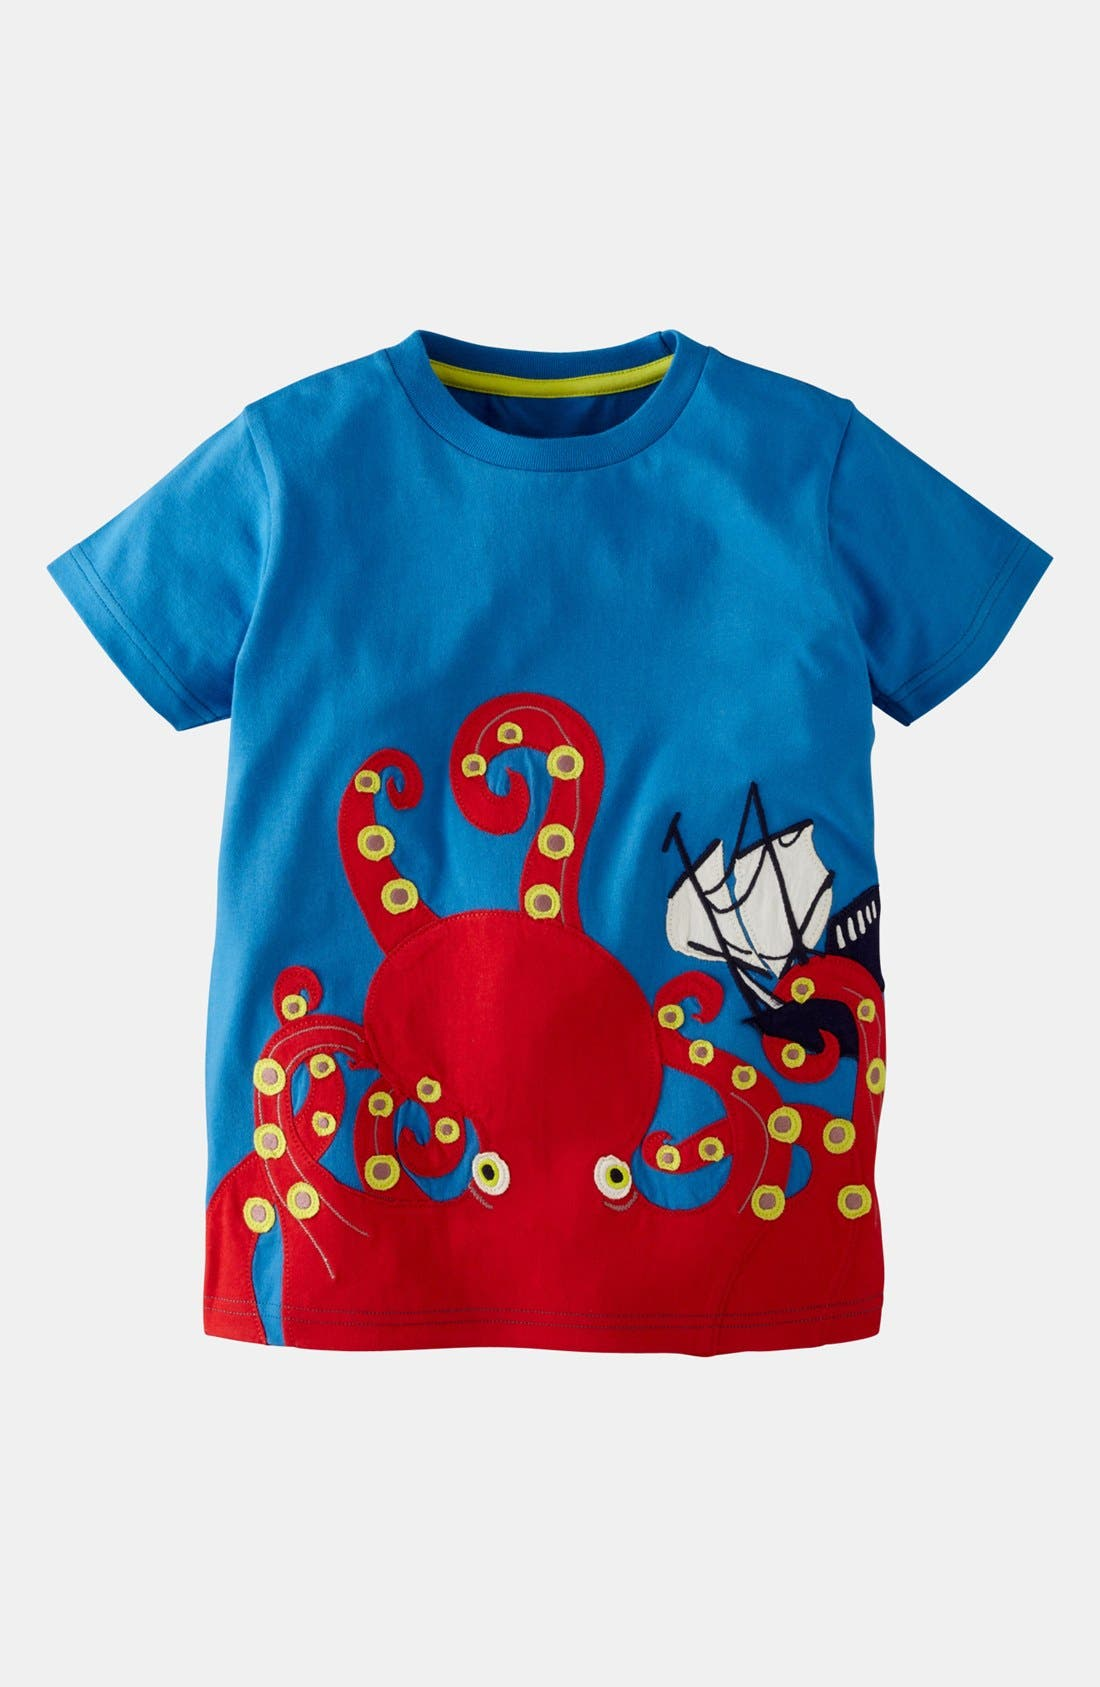 Alternate Image 1 Selected - Mini Boden 'Creatures of the Deep' T-Shirt (Toddler, Little Boys & Big Boys)